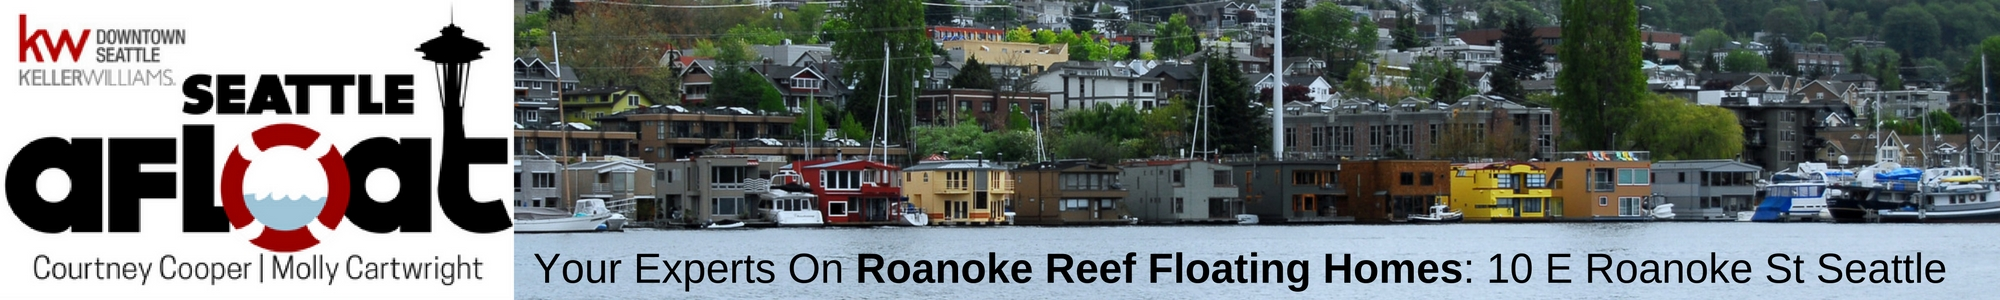 Roanoke Reef Houseboats:  10 E Roanoke